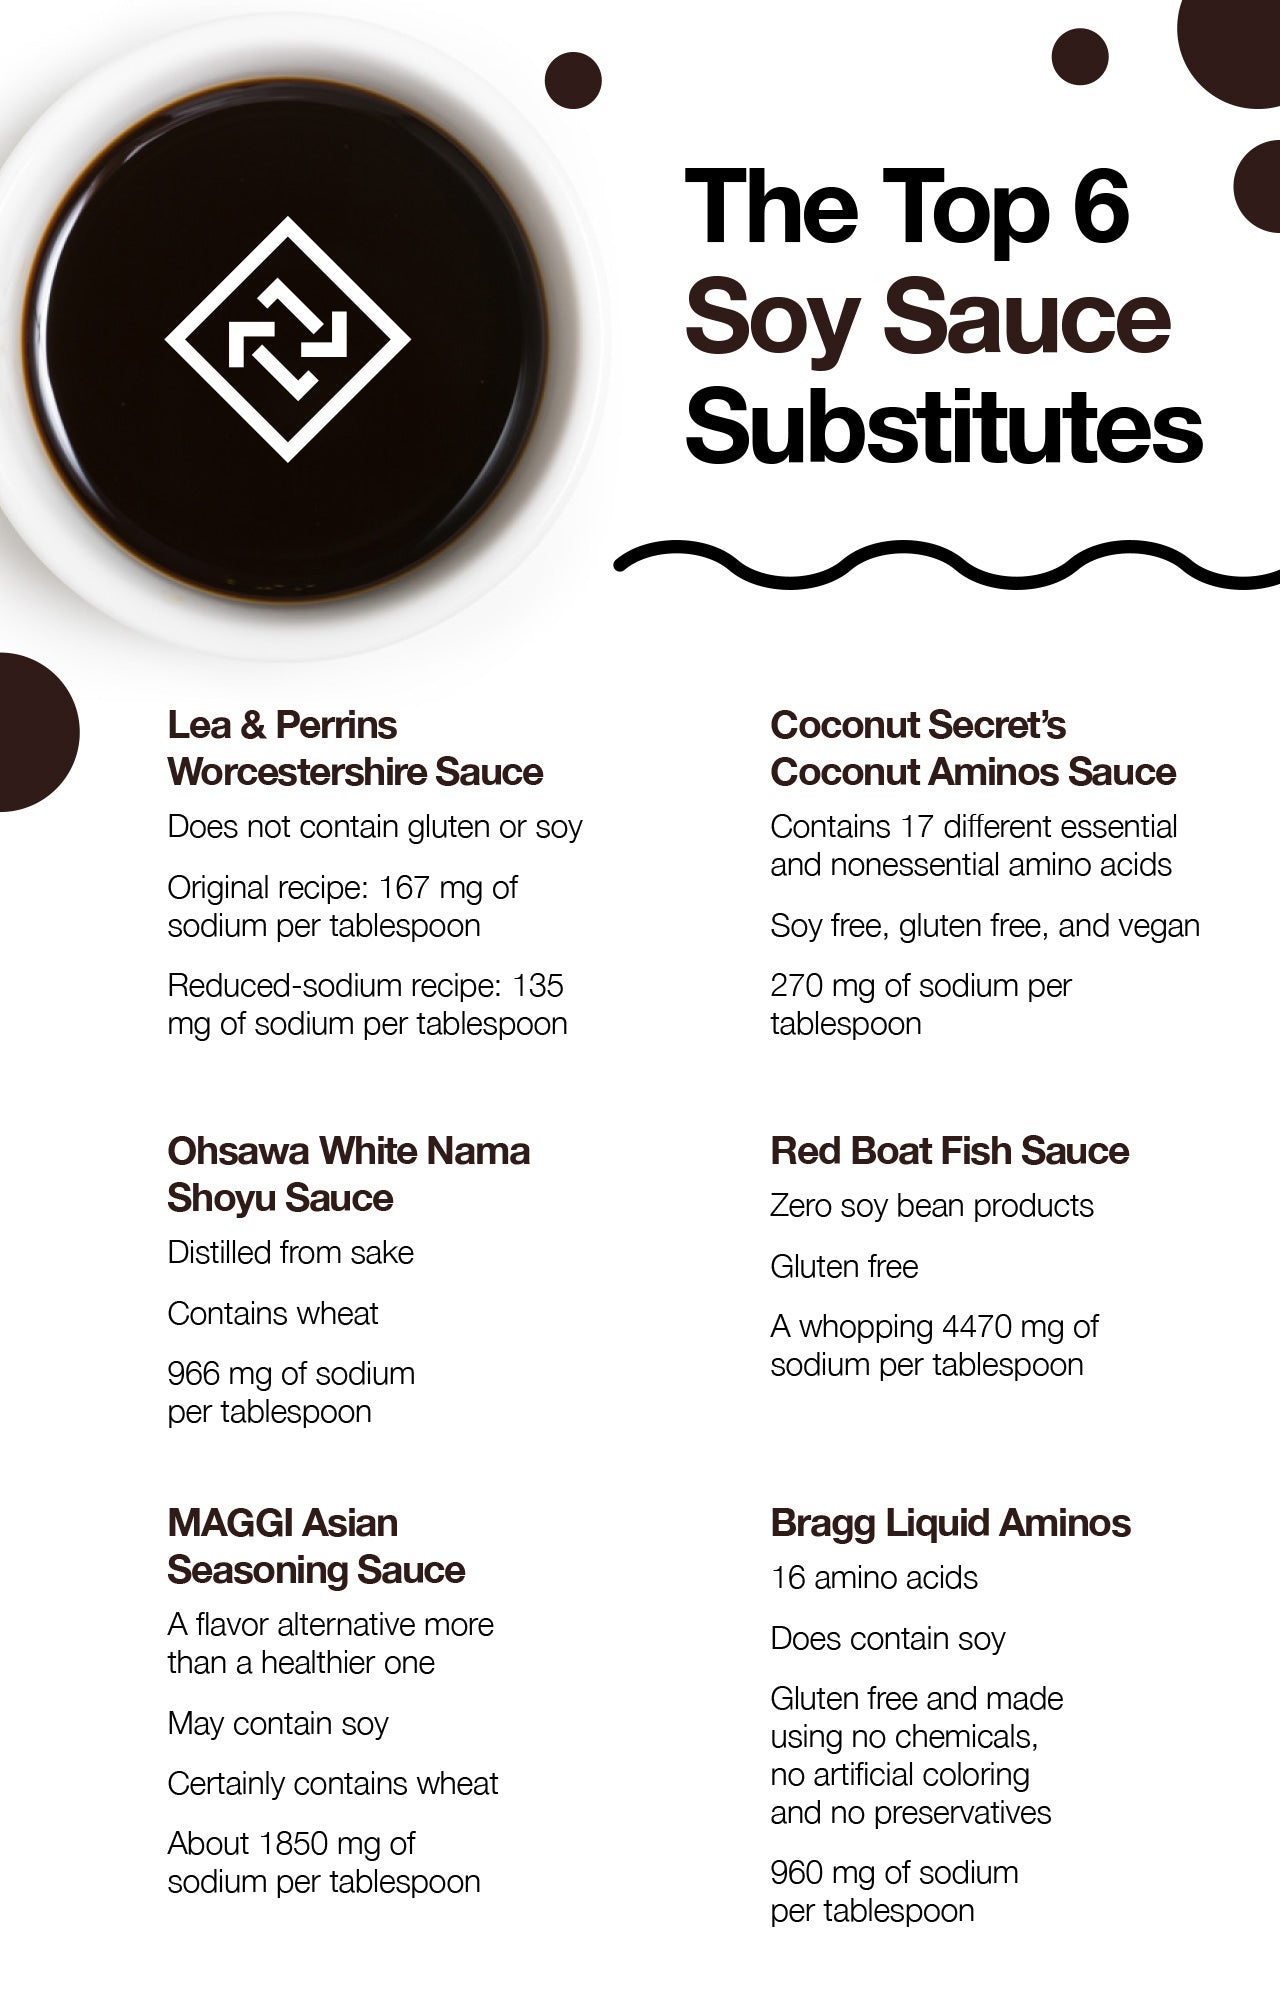 Top 7 soy sauce substitutes.